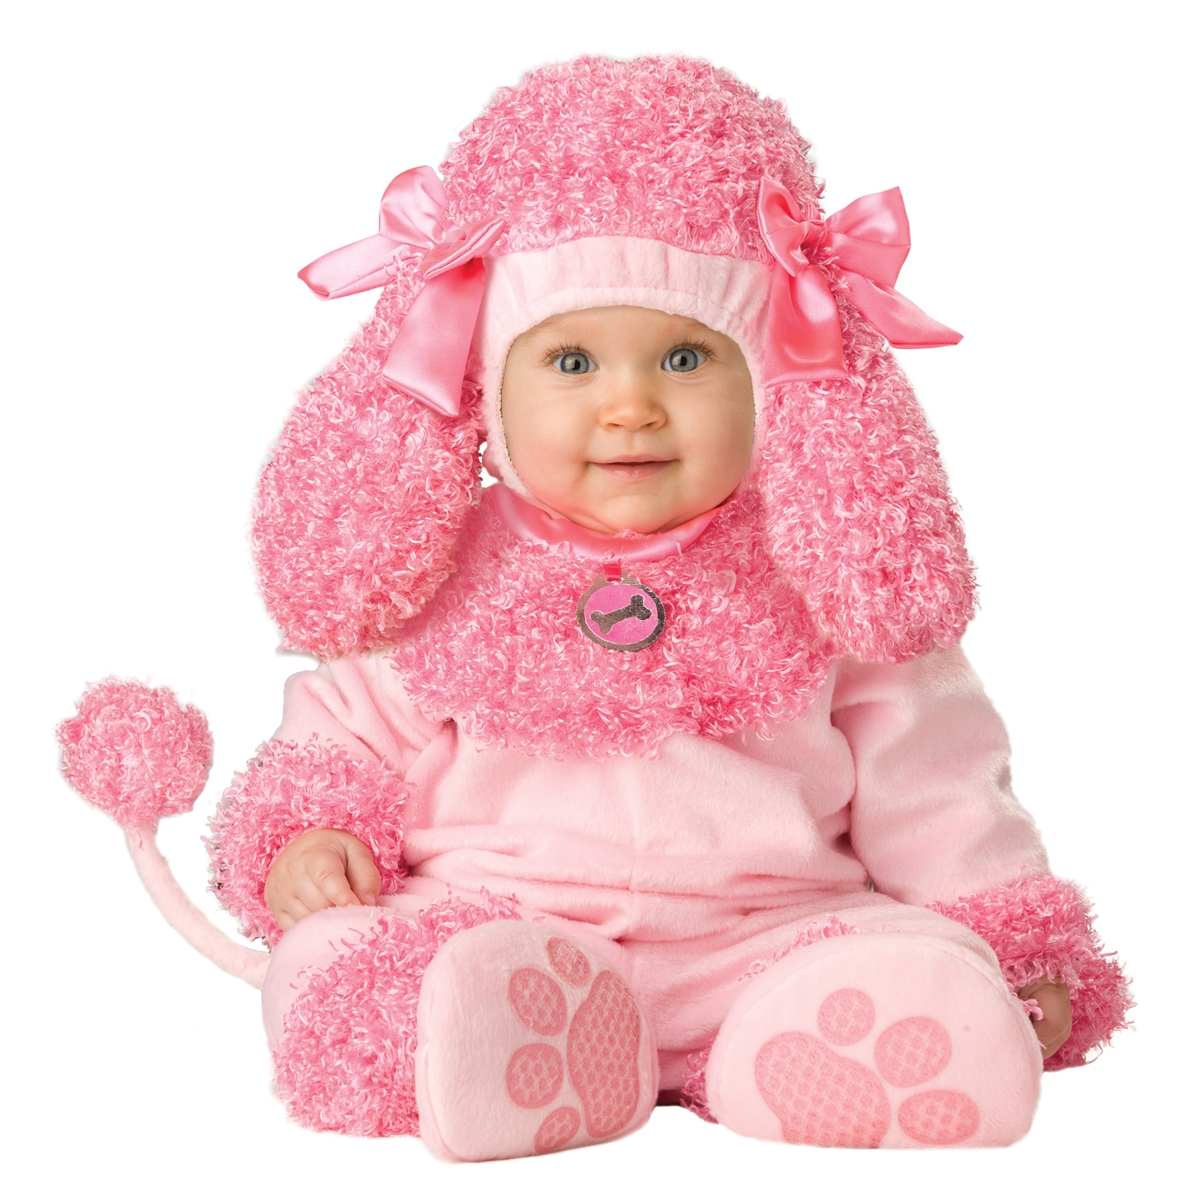 Wallpapers: Cute Baby Wallpapers In Pink Dress